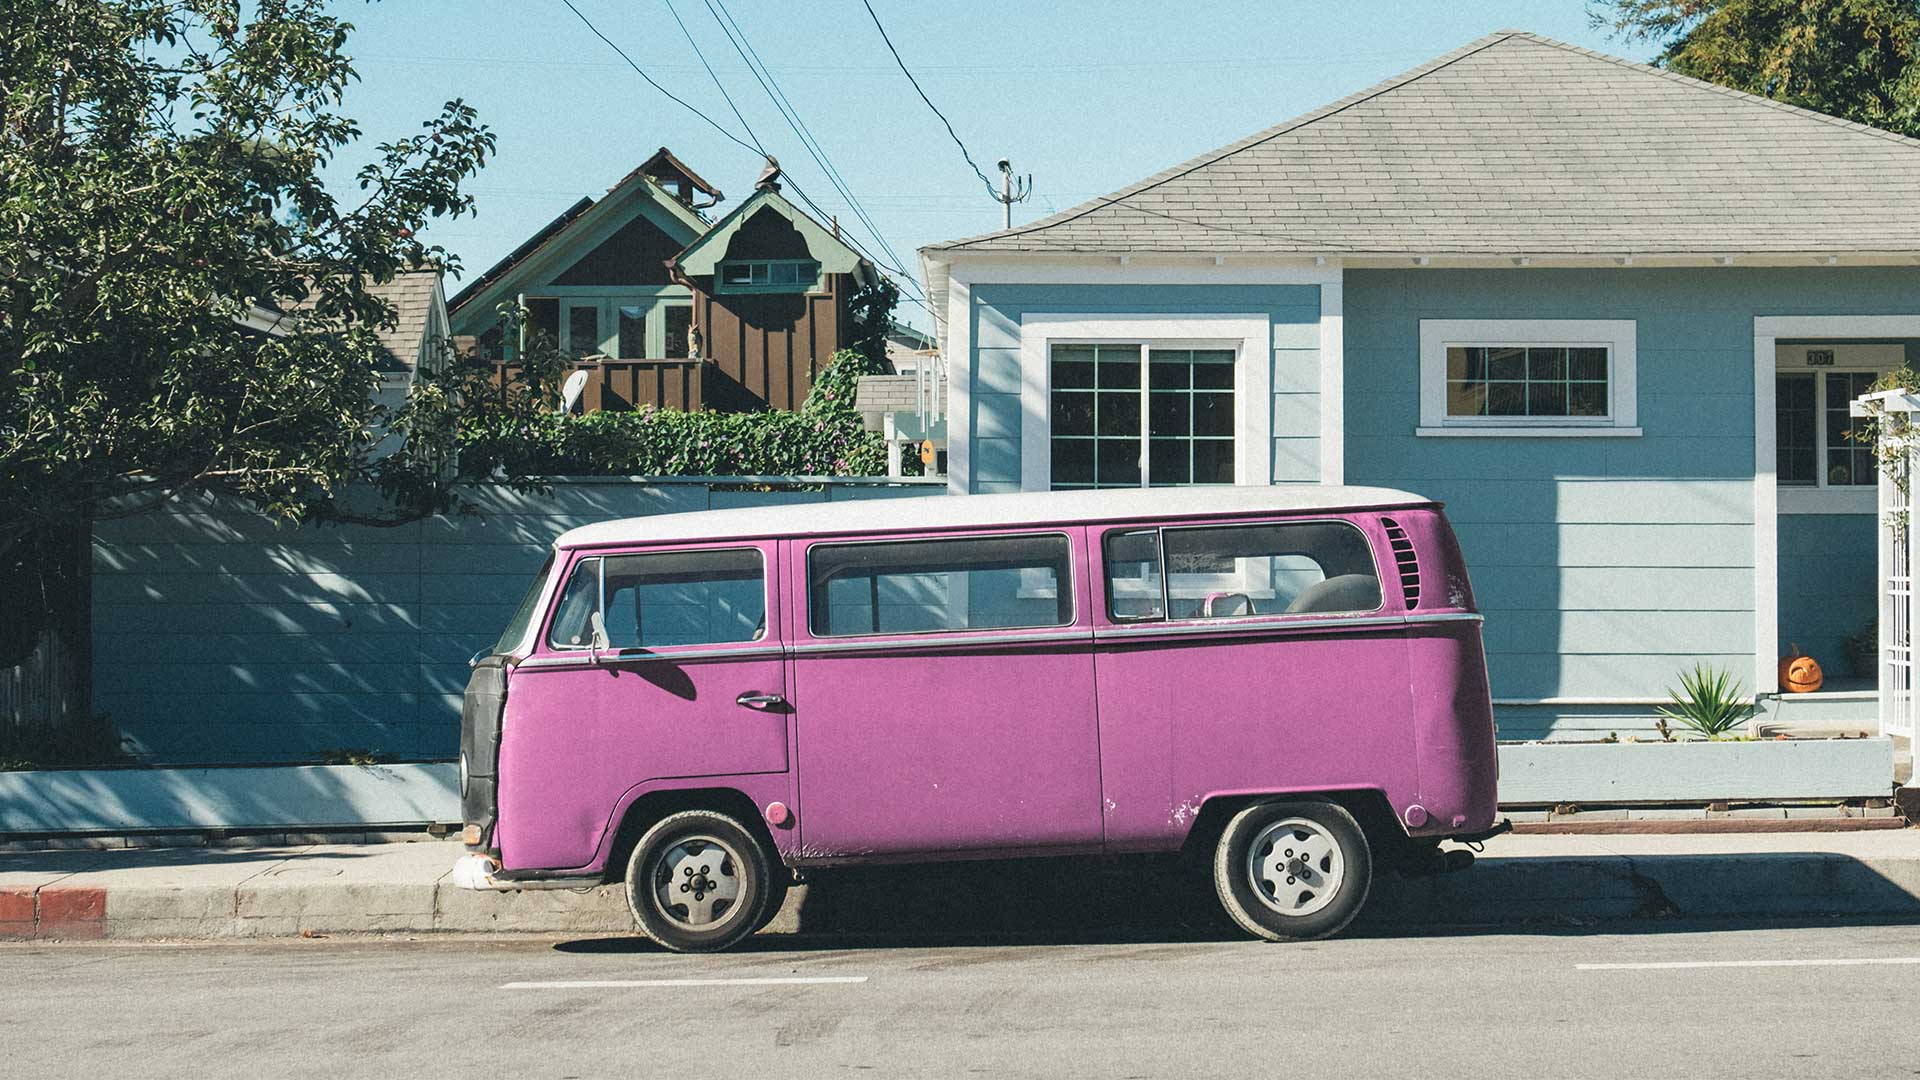 VW campervan pink colorized with Imerge Pro color adjustment effect